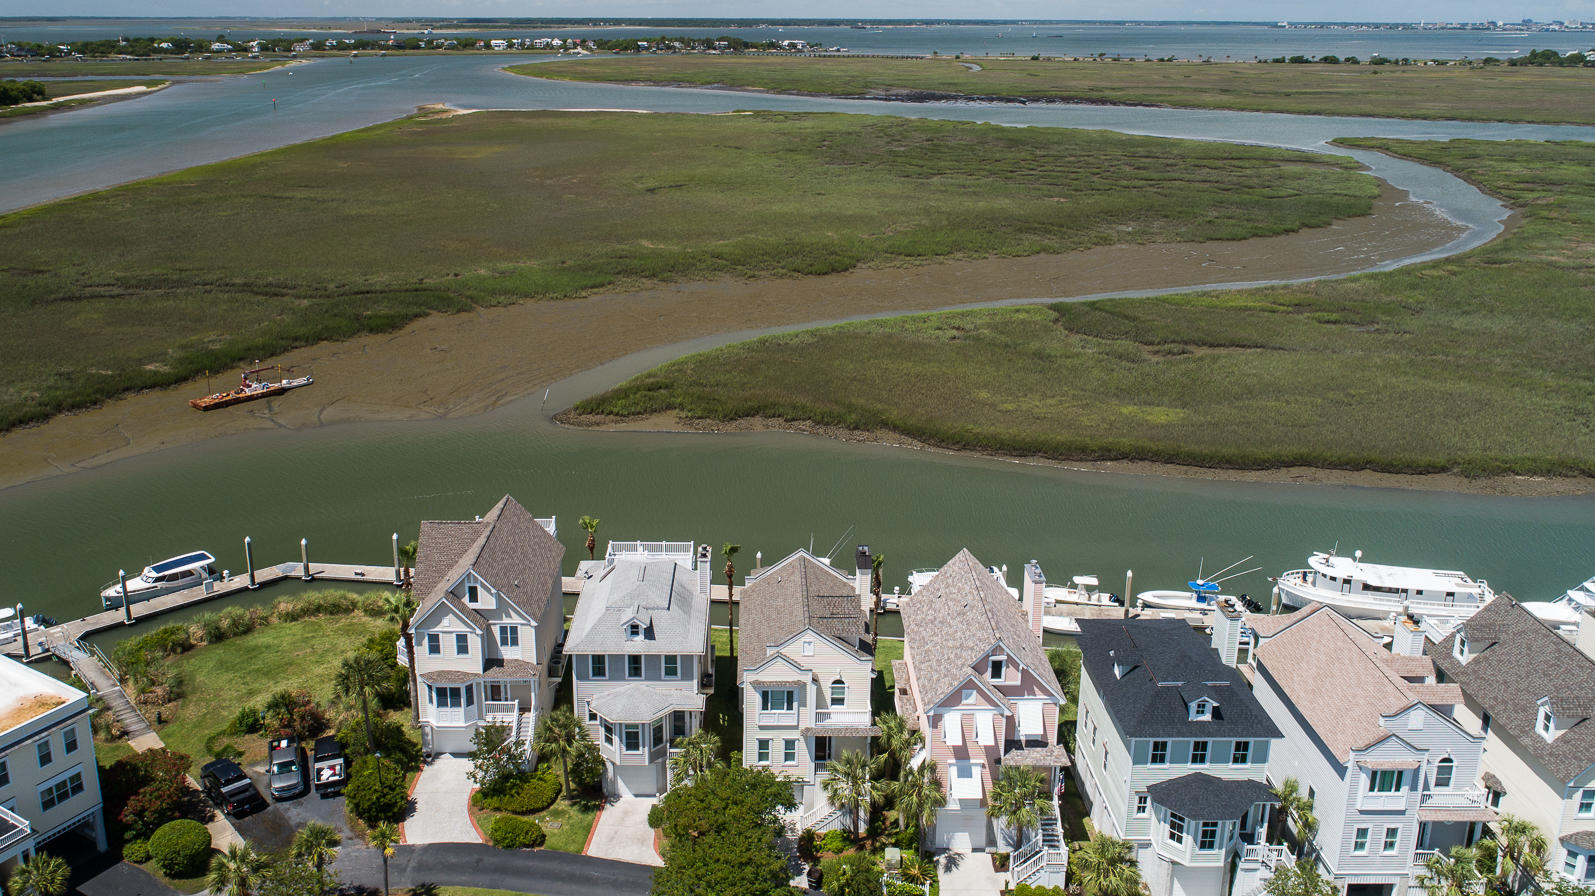 Tolers Cove Homes For Sale - B-4 & B-5 Tolers Cove Marina 70ft + Home, Mount Pleasant, SC - 0